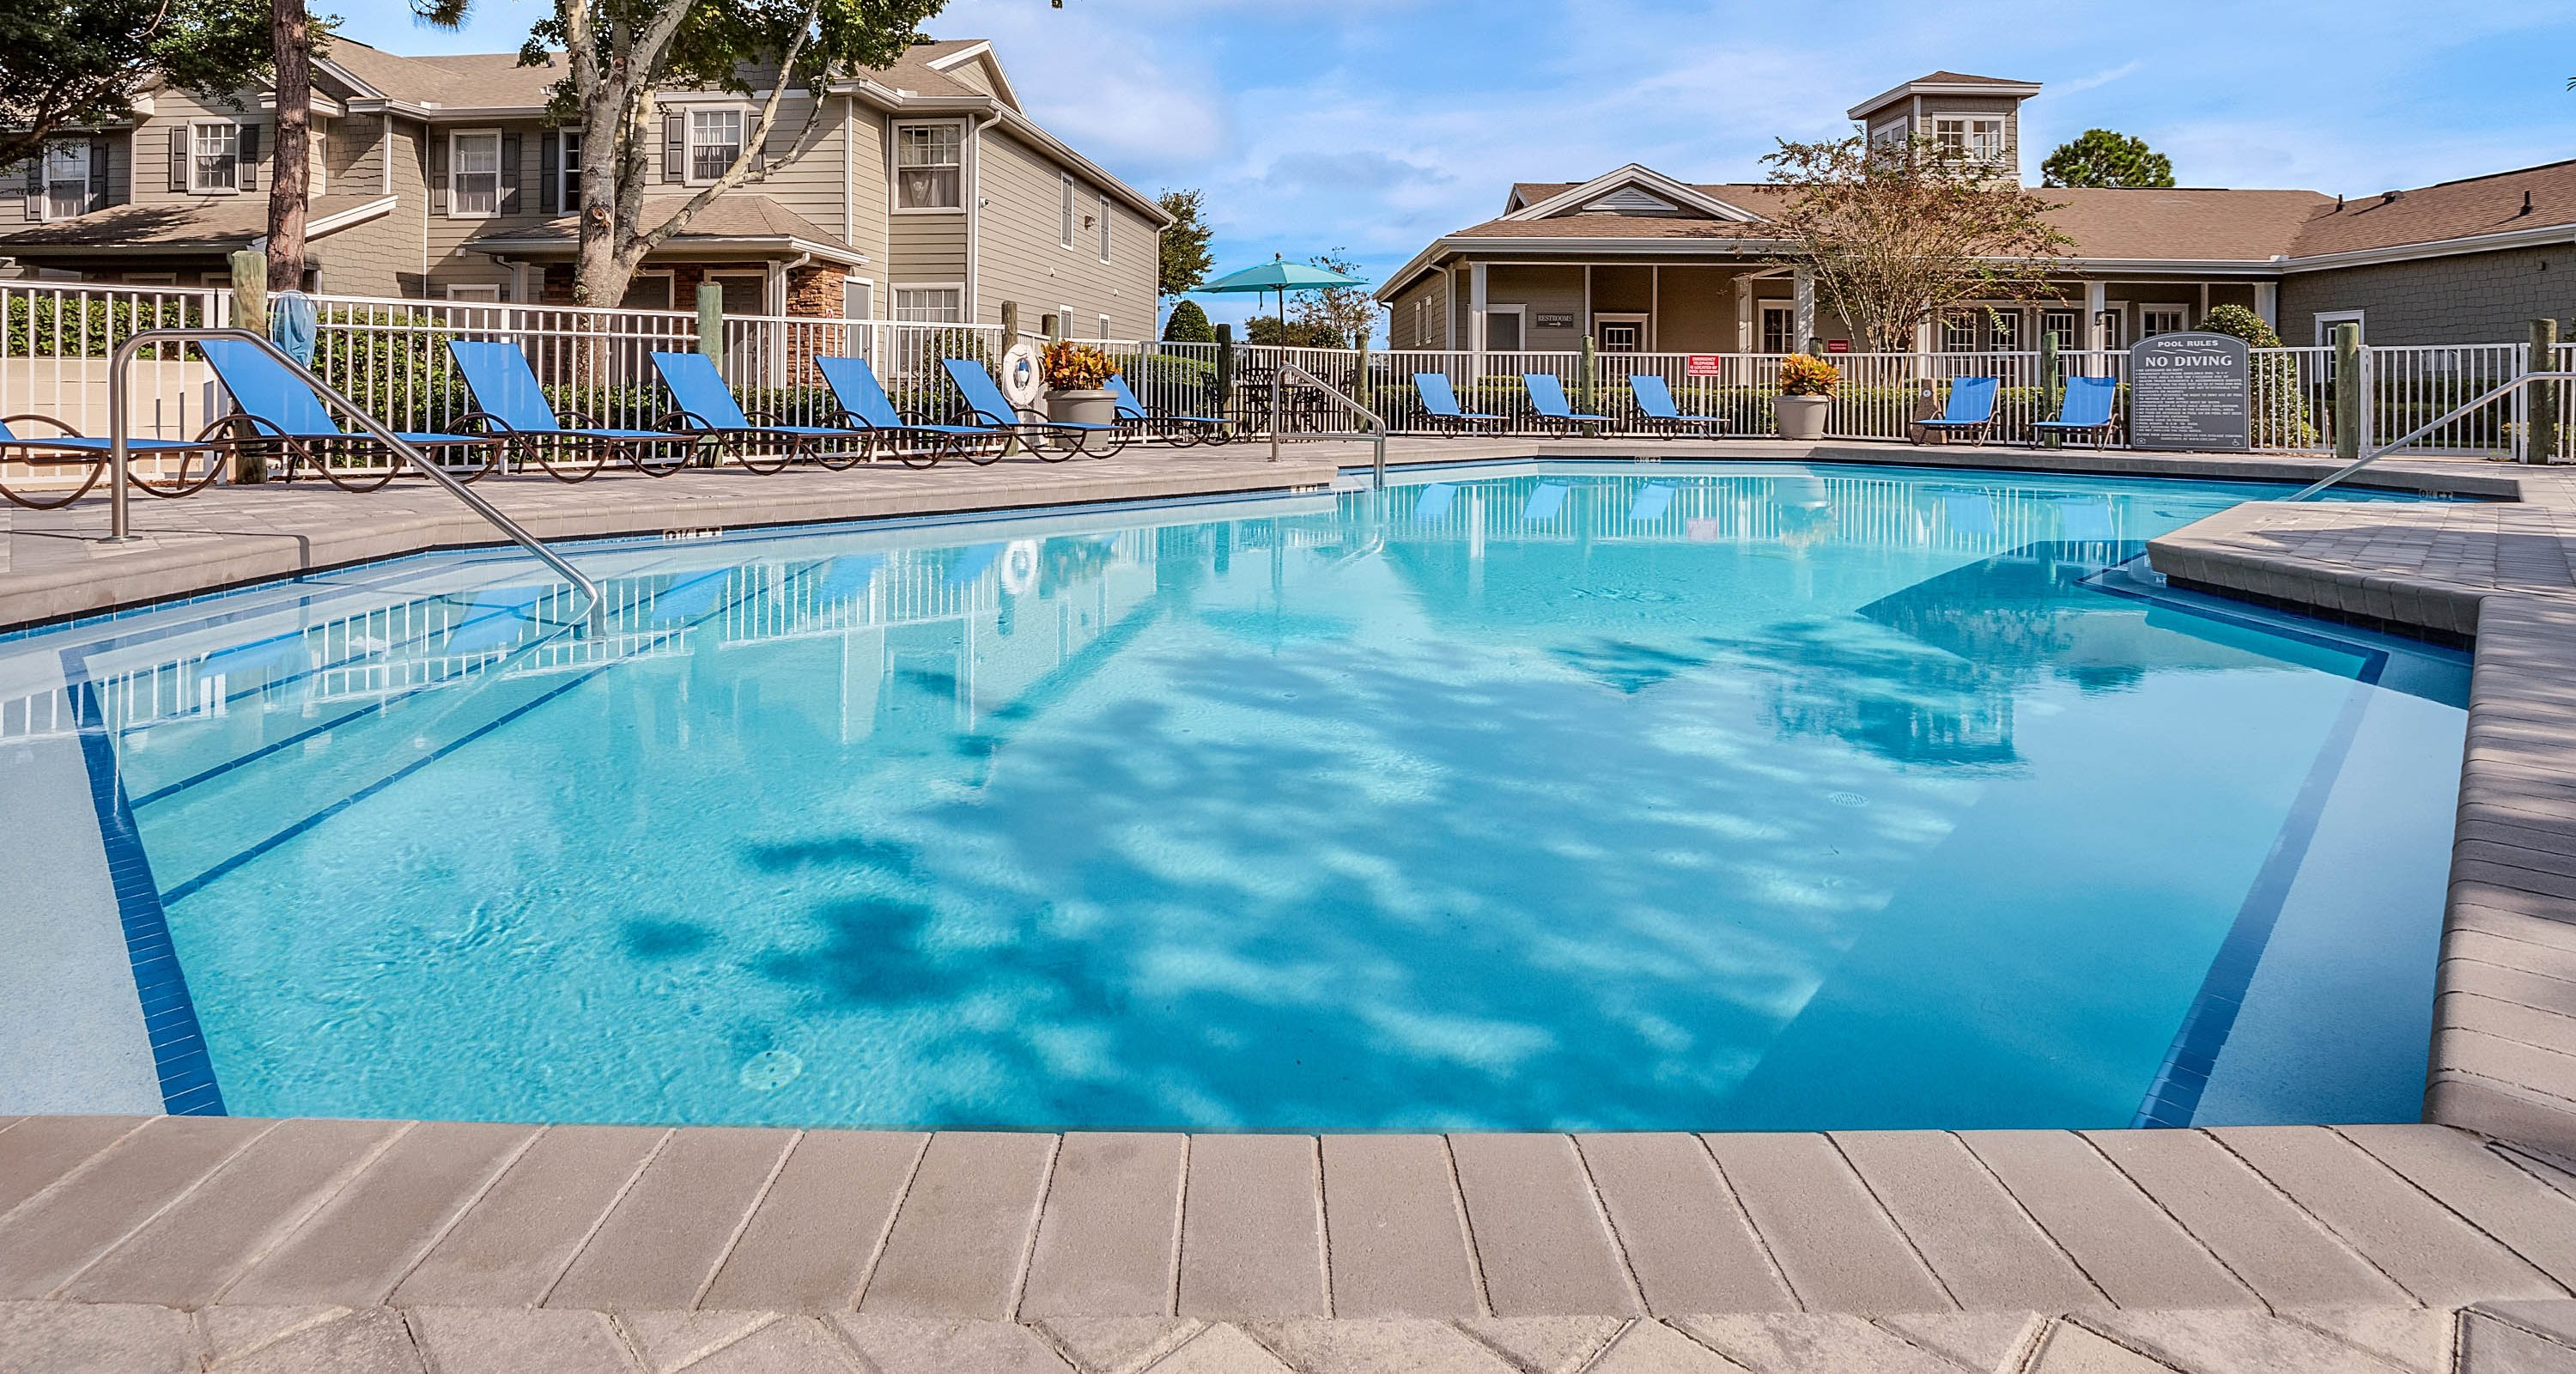 Saxon Trace Apartments for rent in Orange City, FL. Make this community your new home or visit other Concord Rents communities at ConcordRents.com. Resort-style pool